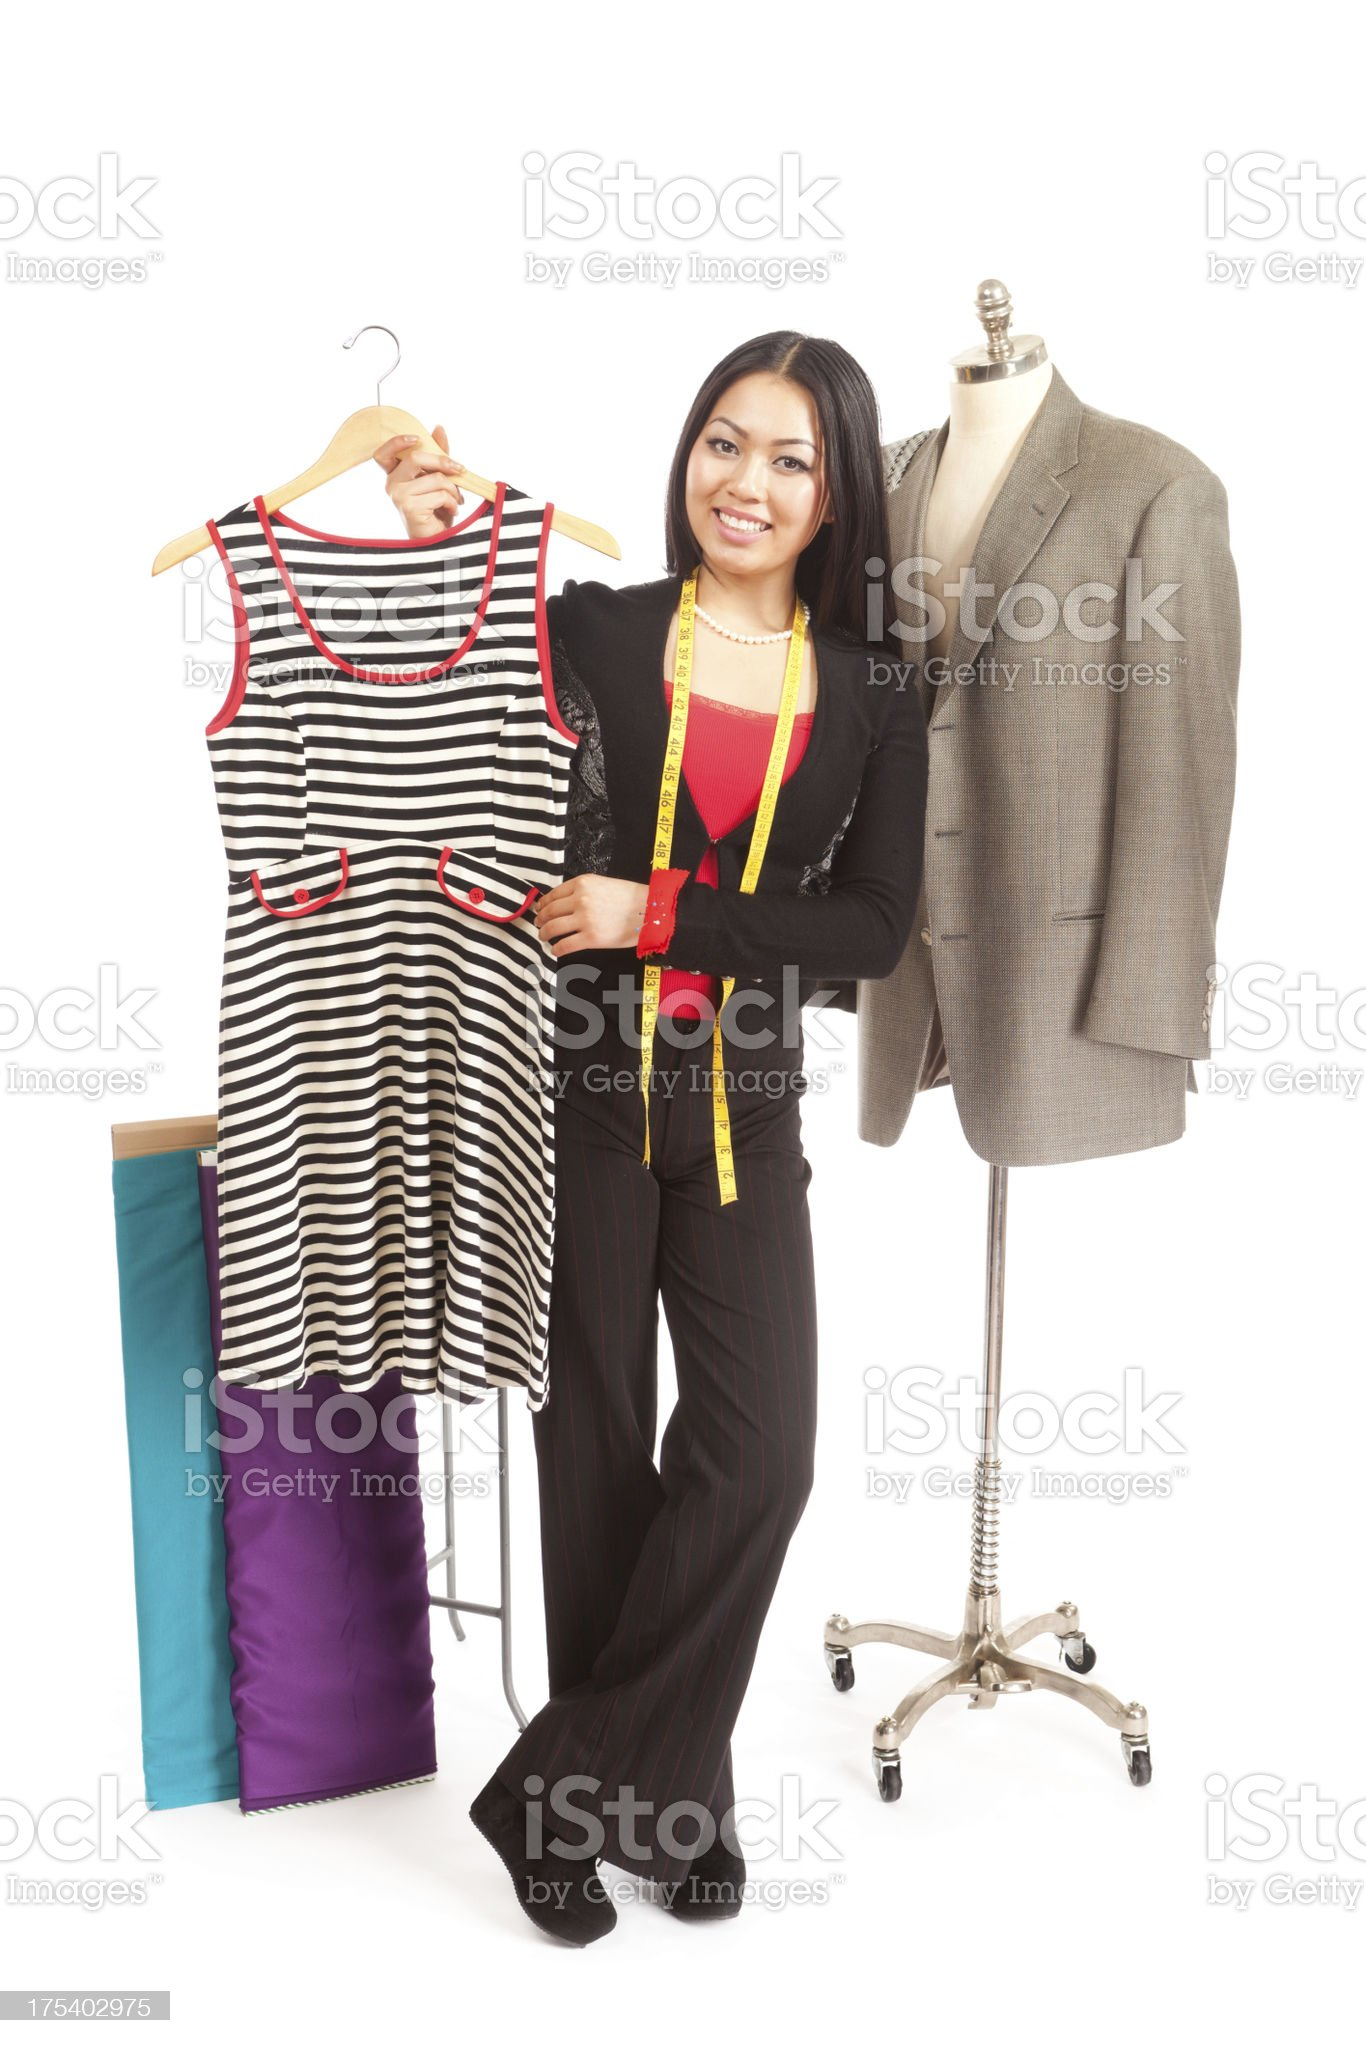 Fashion Designer and Tailor royalty-free stock photo